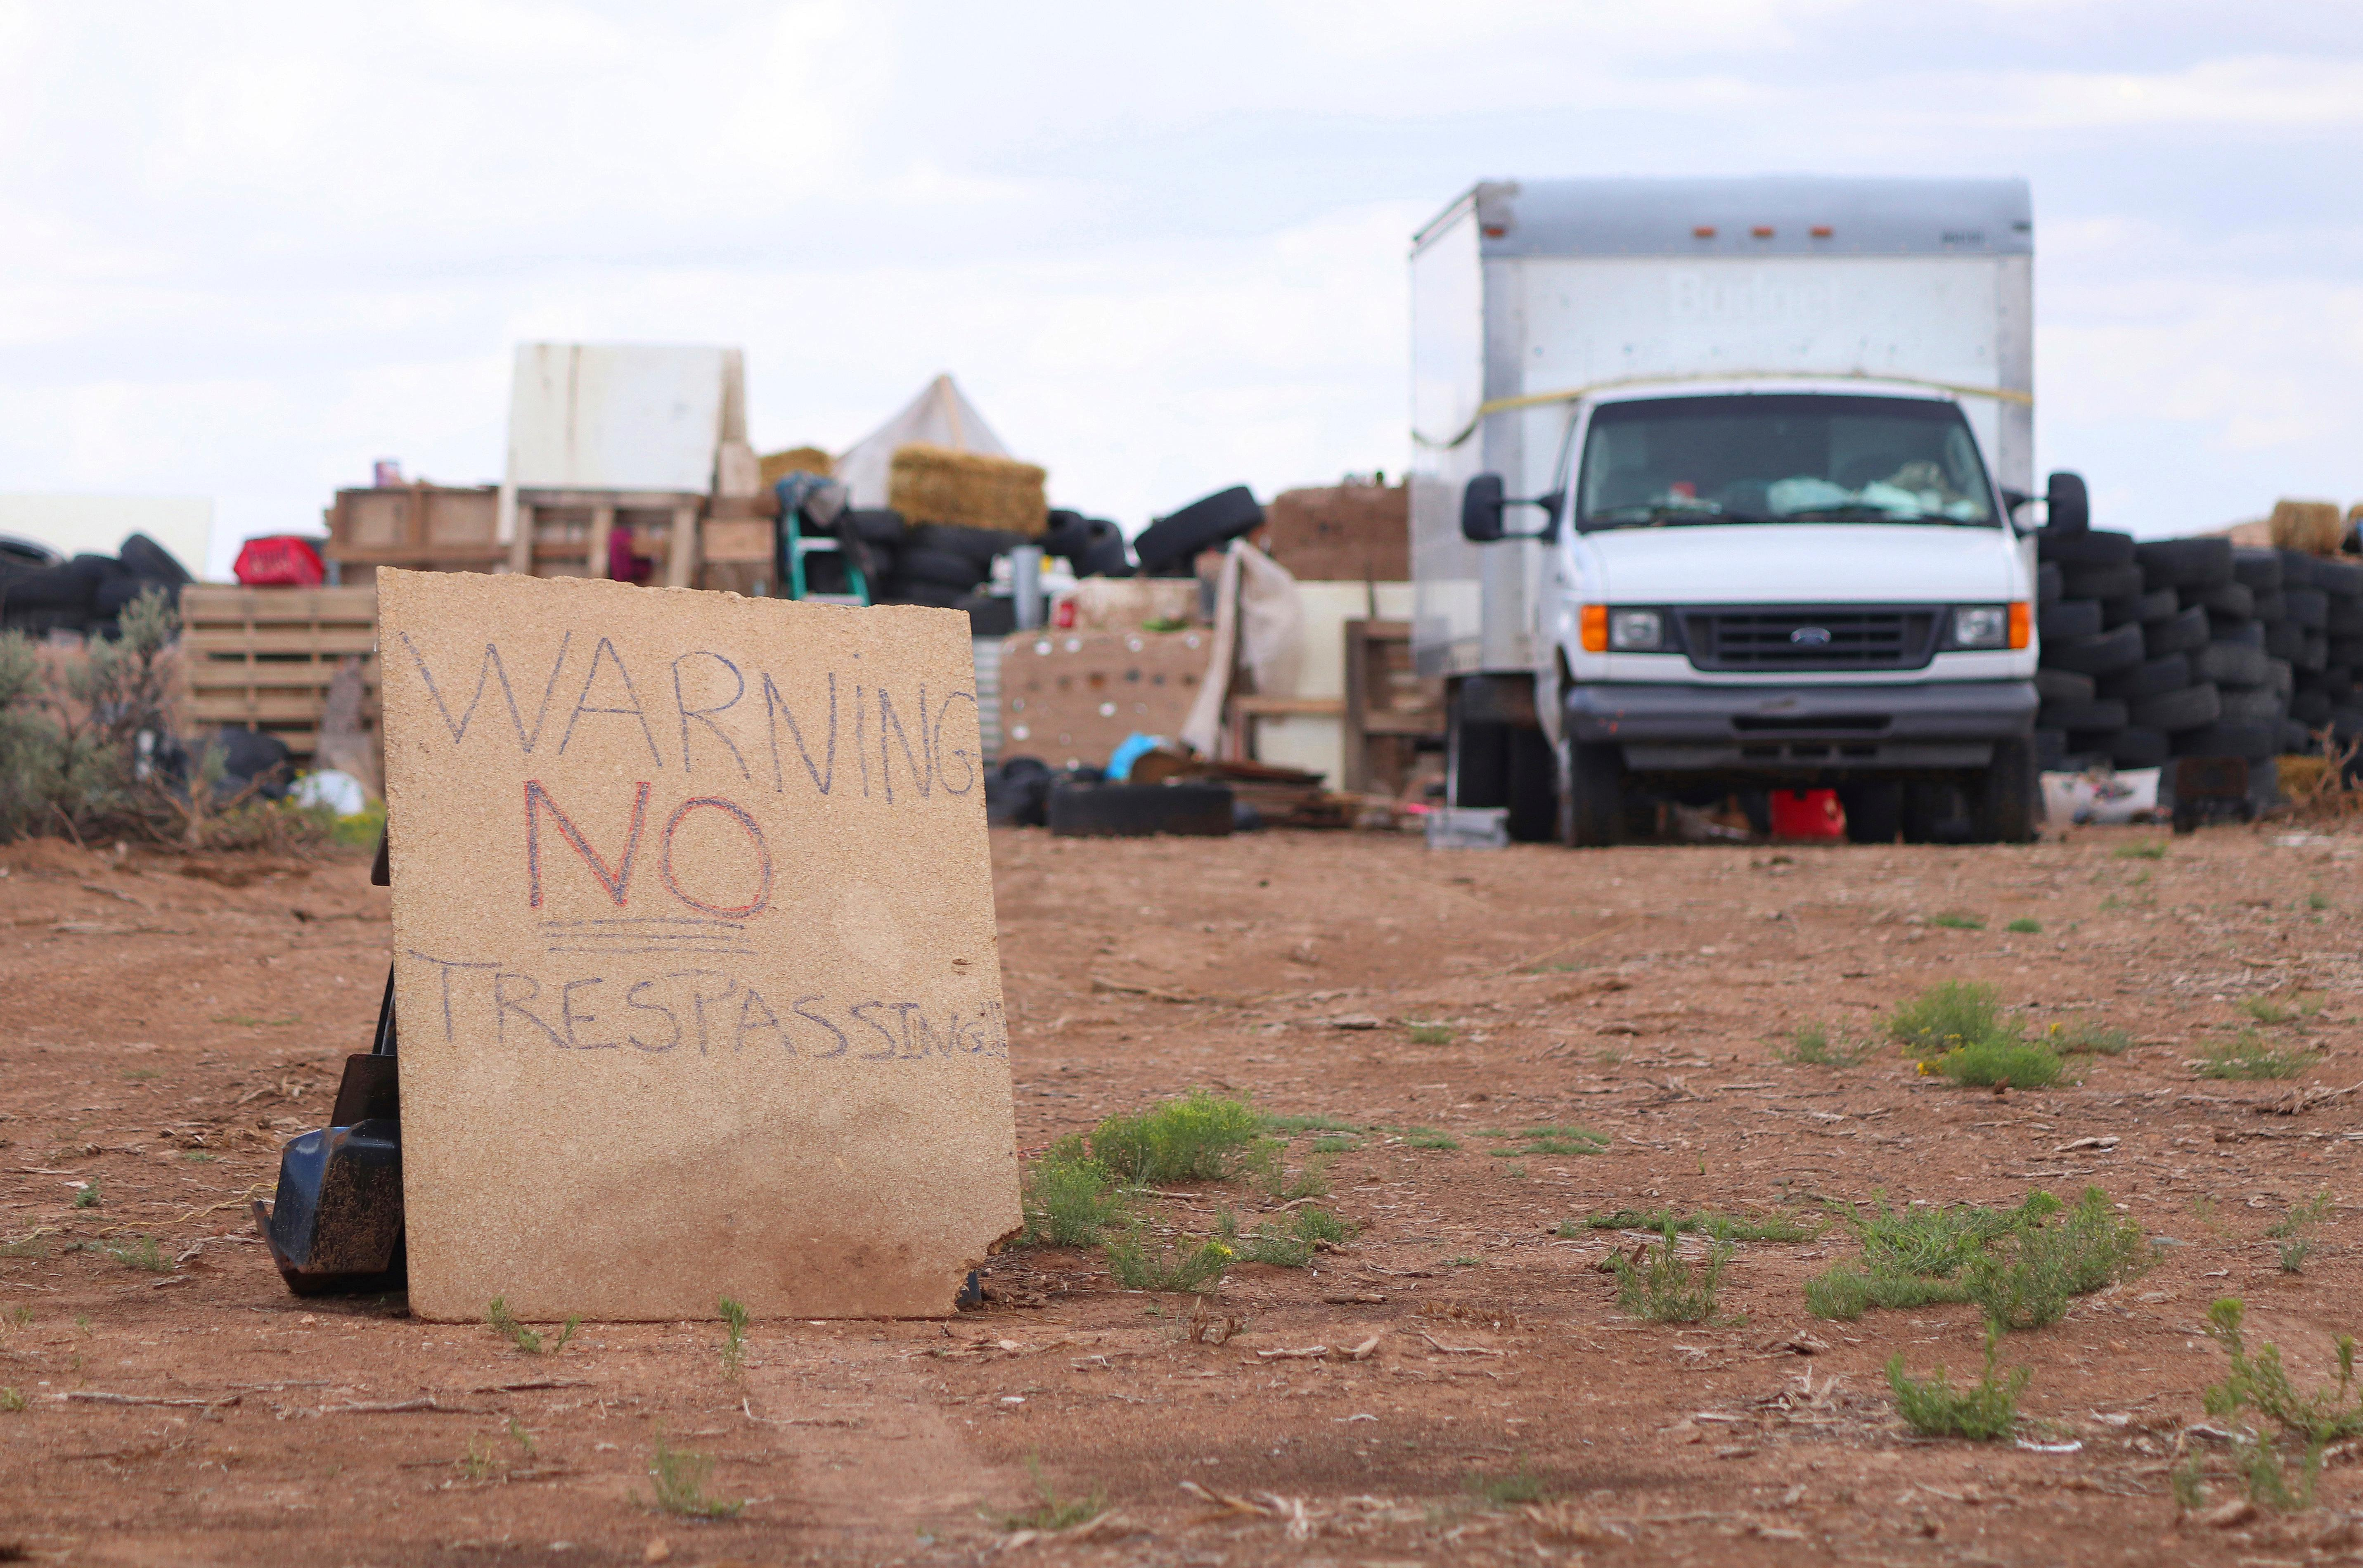 "This Aug. 5, 2018 photo shows a ""no trespassing"" sign outside the location where people camped near Amalia, N.M. Three women believed to be the mothers of 11 children found hungry and living in a filthy makeshift compound in rural northern New Mexico have been arrested, following the weekend arrests of two men, authorities said Monday, Aug. 6. (Jesse Moya/Santa Fe New Mexican via AP)"